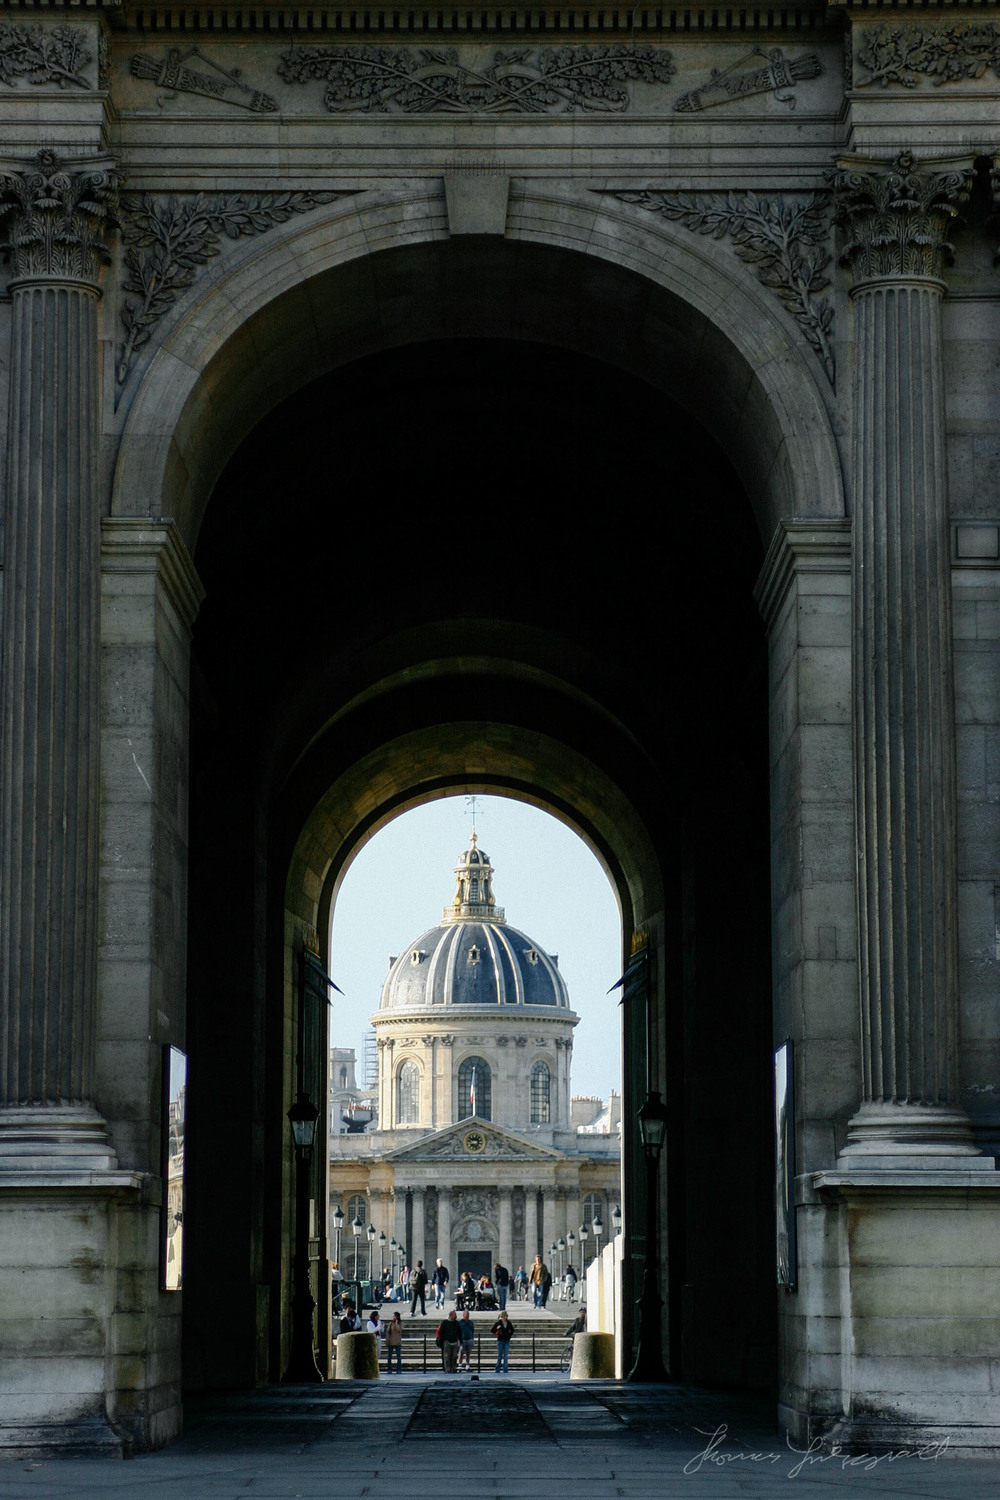 Looking out from the Louvre